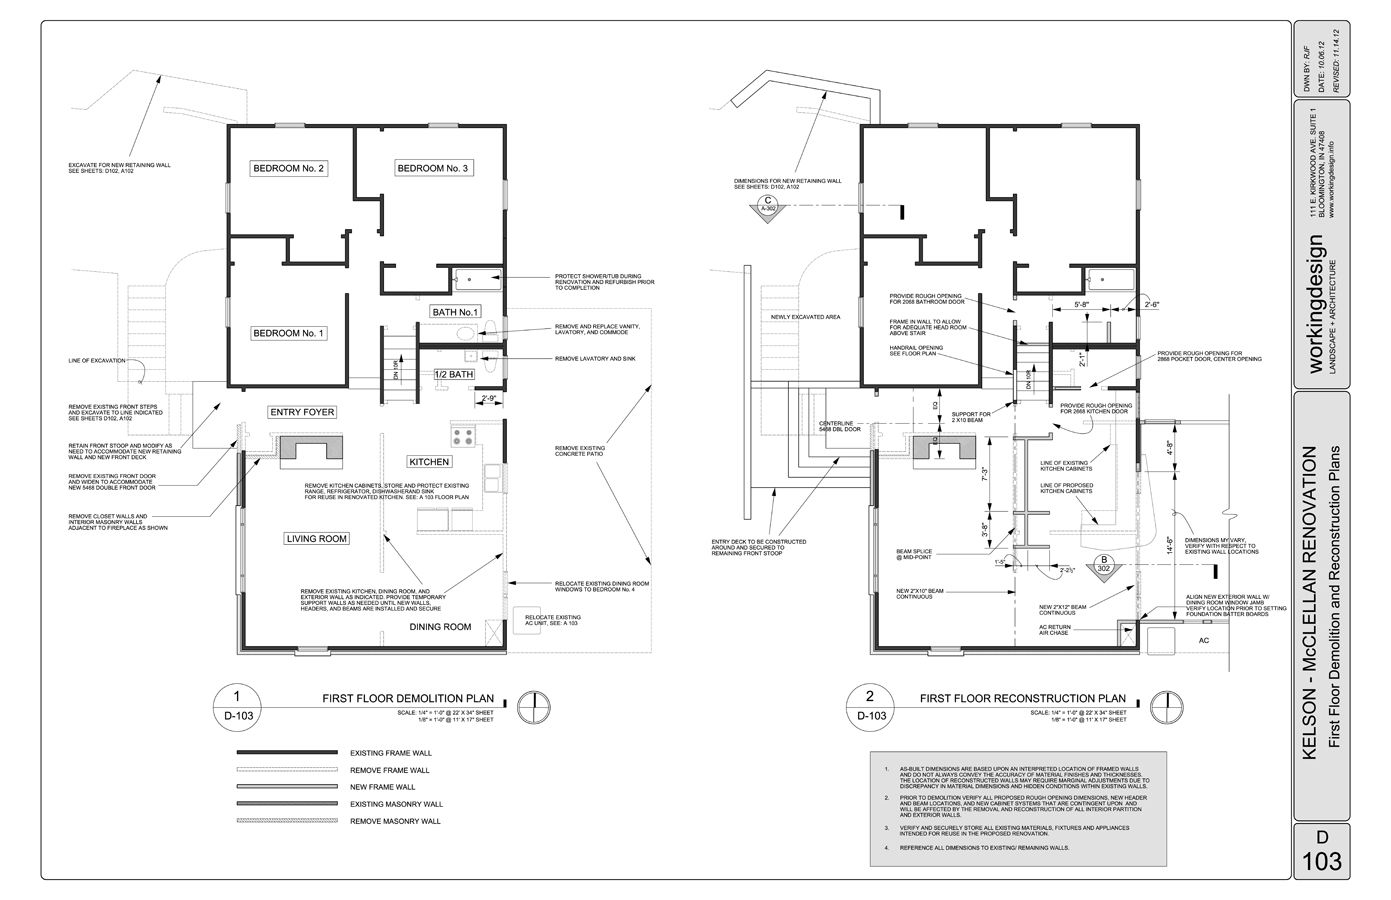 demolition plan template - d 103 first floor demolition plan 1391 900